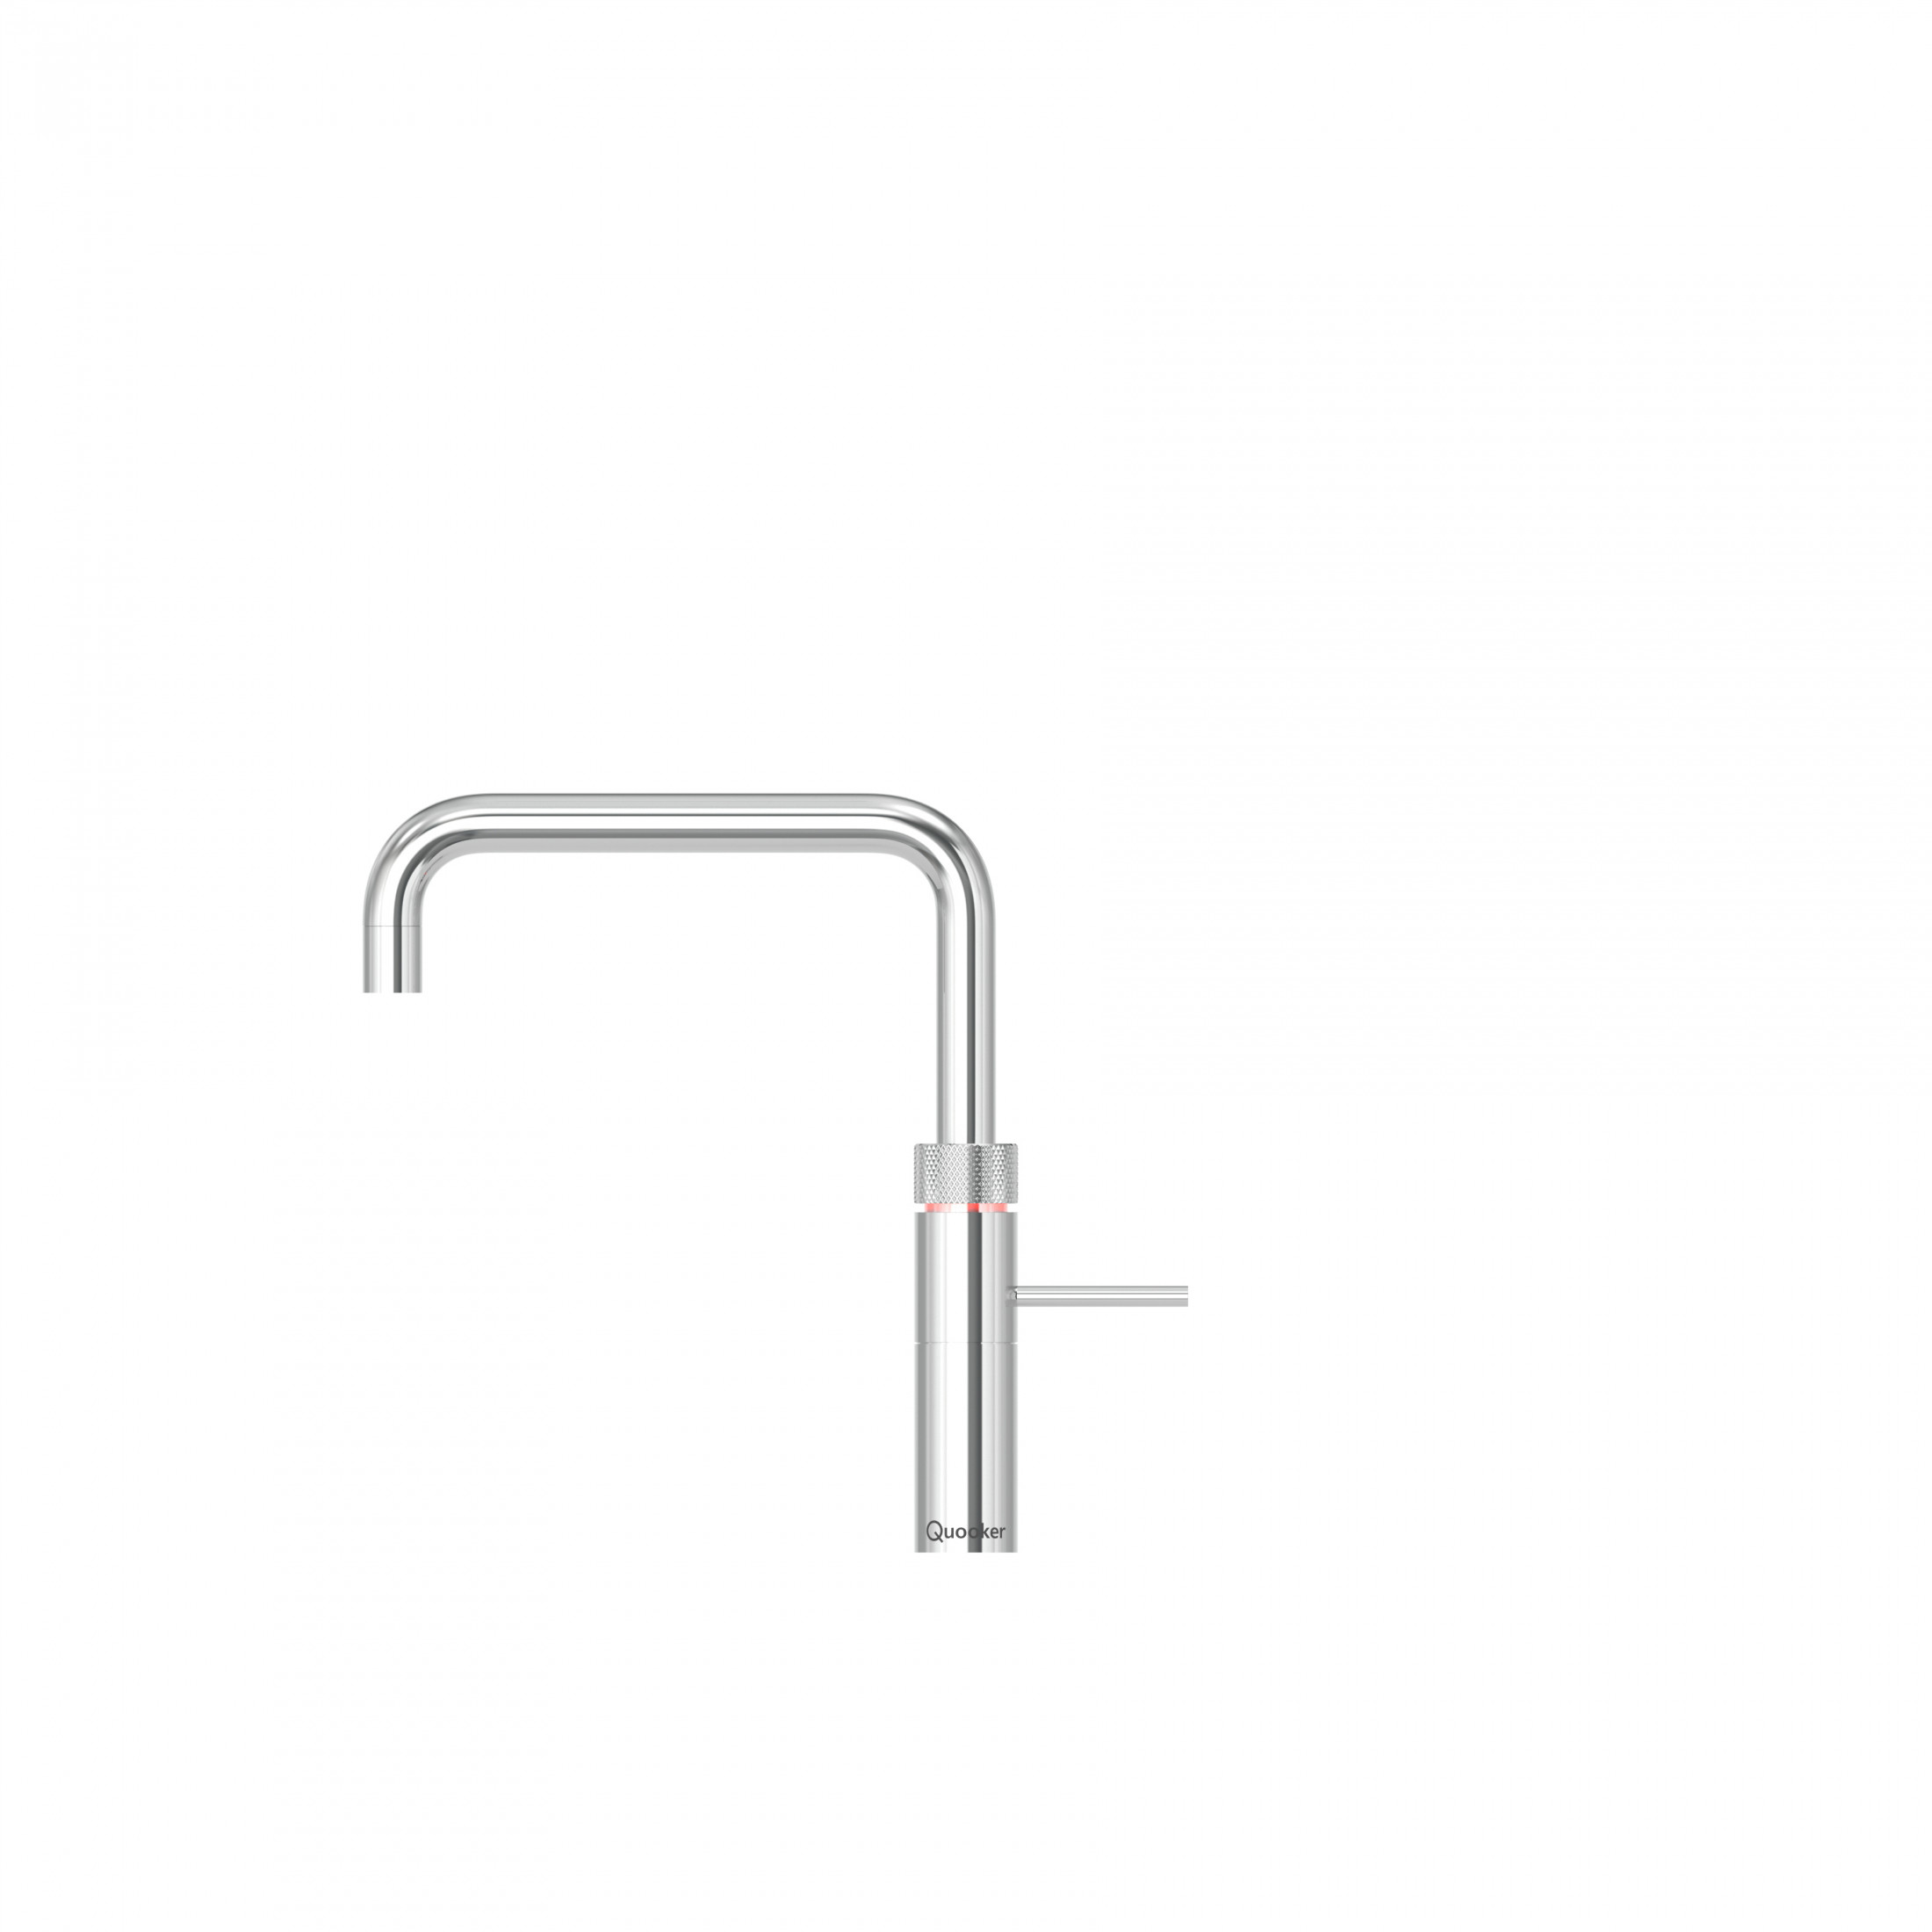 Quooker Fusion Square Pro3 Boiling Water Tap 3FSCHR